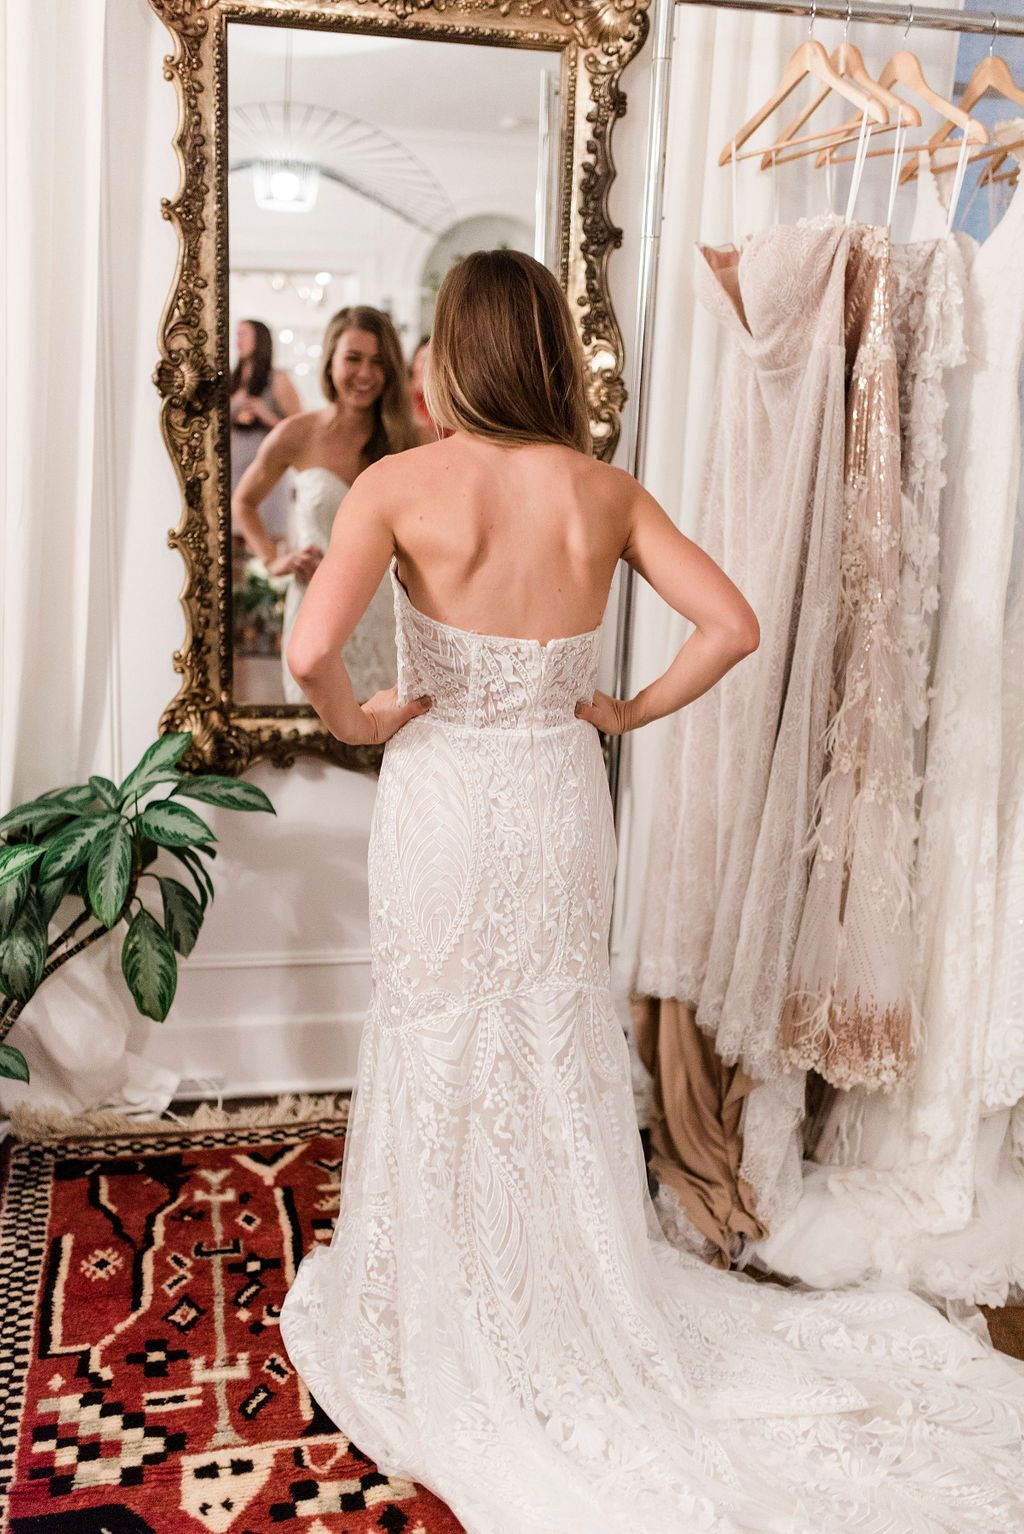 This Wedding Dress Try On Party Is Changing How Both Brides And